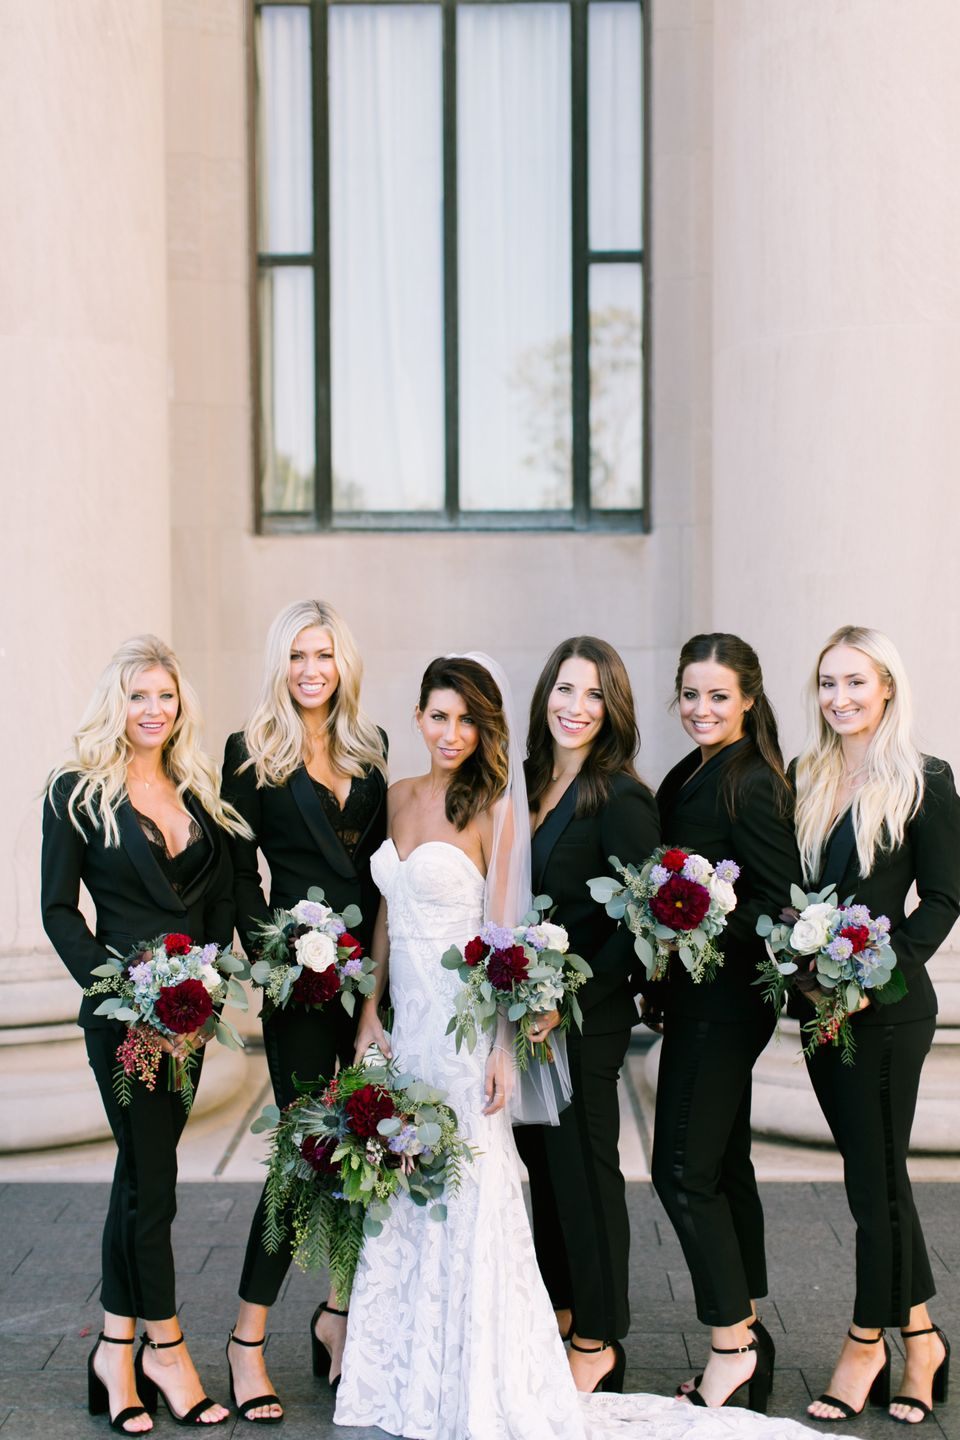 14 Photos Of Bridesmaids Rocking Pants And Looking Chic As Hell